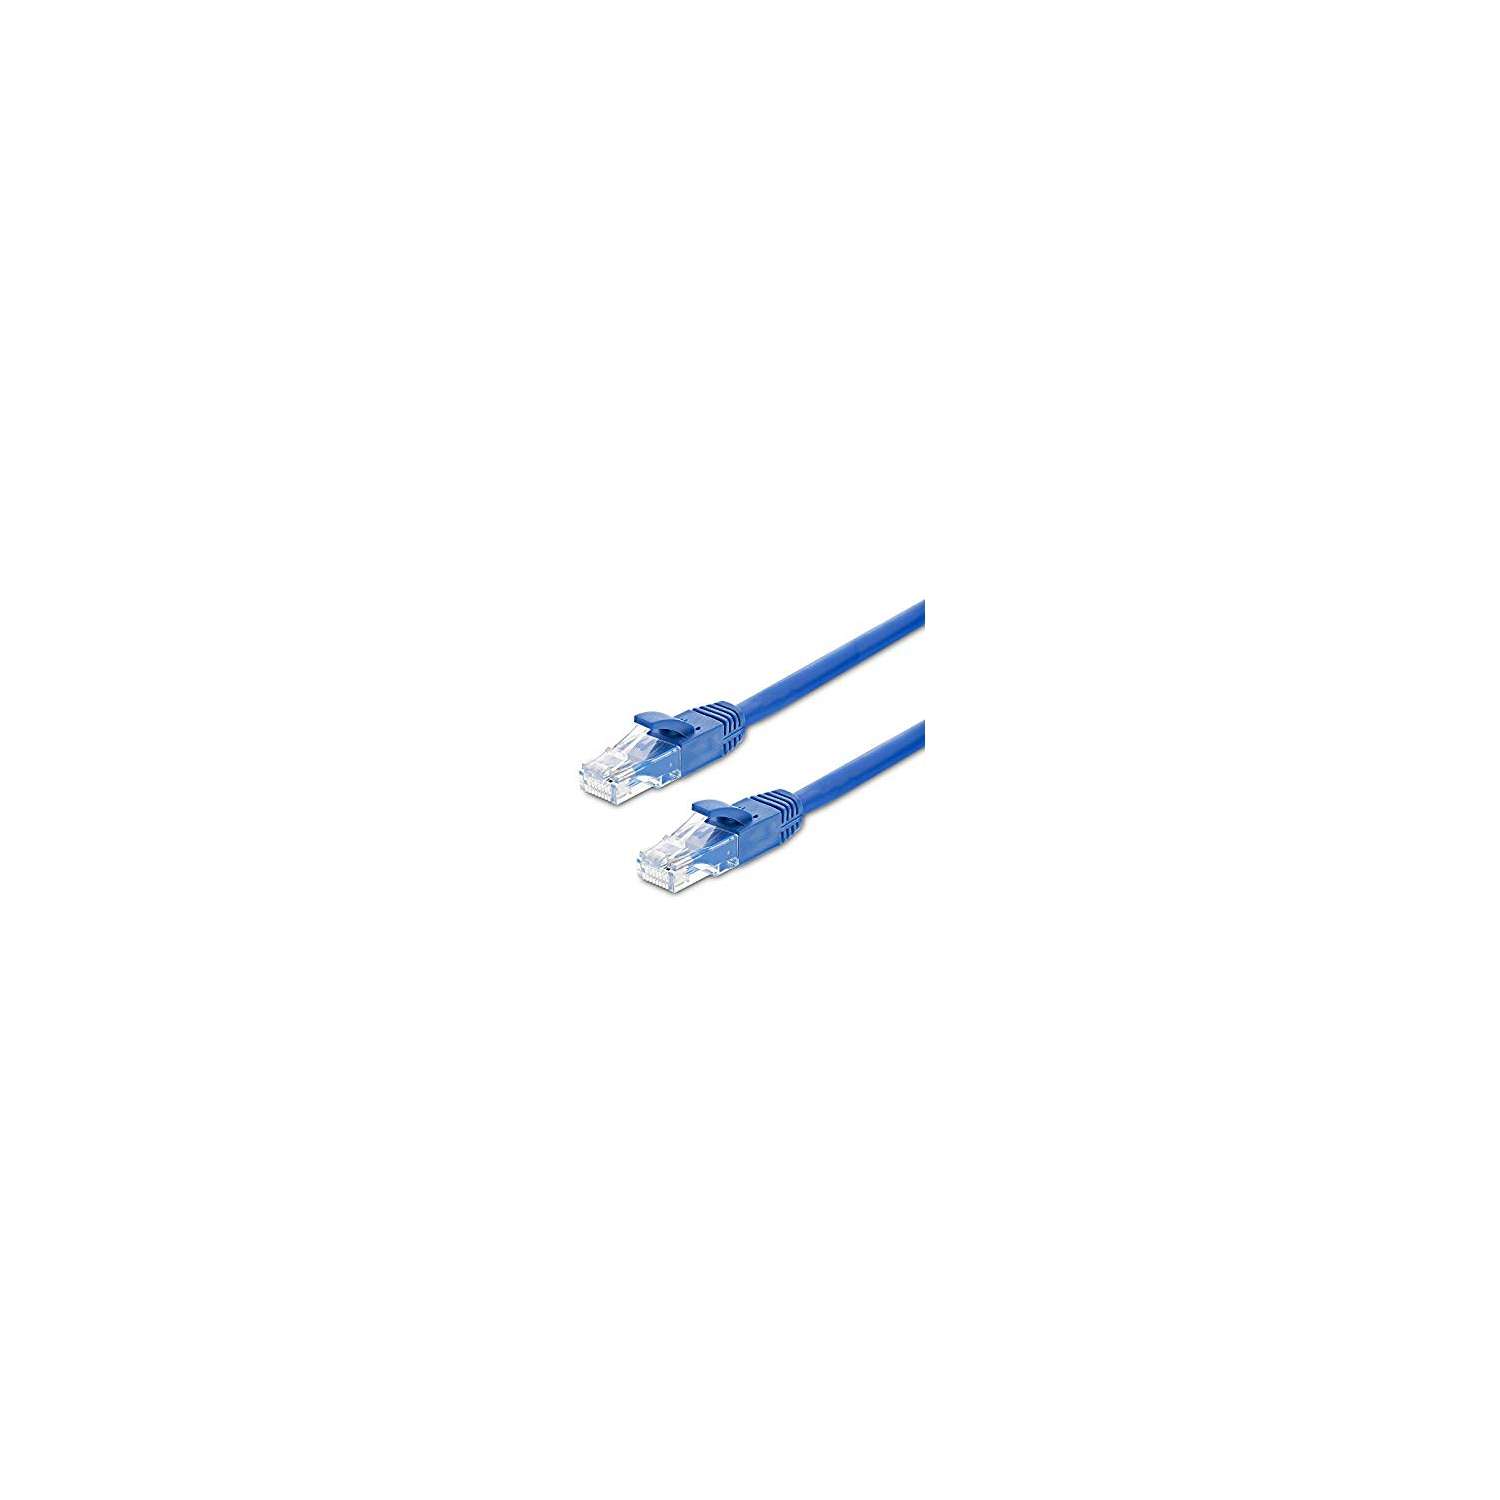 Fosmon 200 Feet Rj45 Cat6 Ethernet Network Patch Cable For Modem Twisted Pair Wiring Solutions Ltd Router Lan Printer Mac Pc Laptop Blue Cords Best Buy Canada